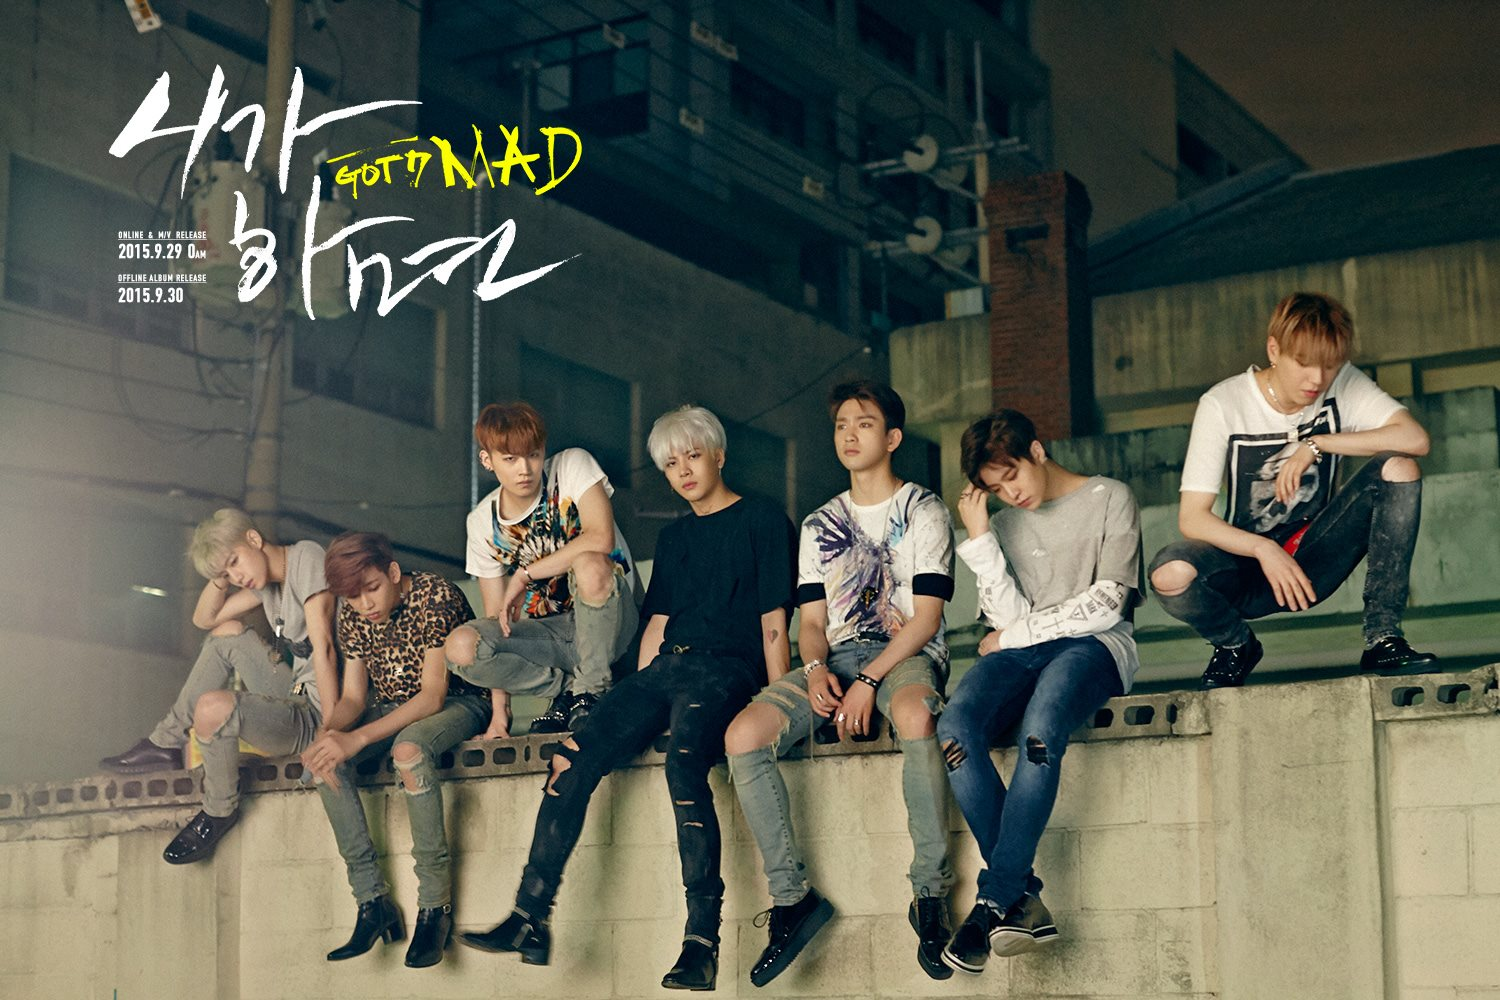 GOT7 If you do MV vostfr